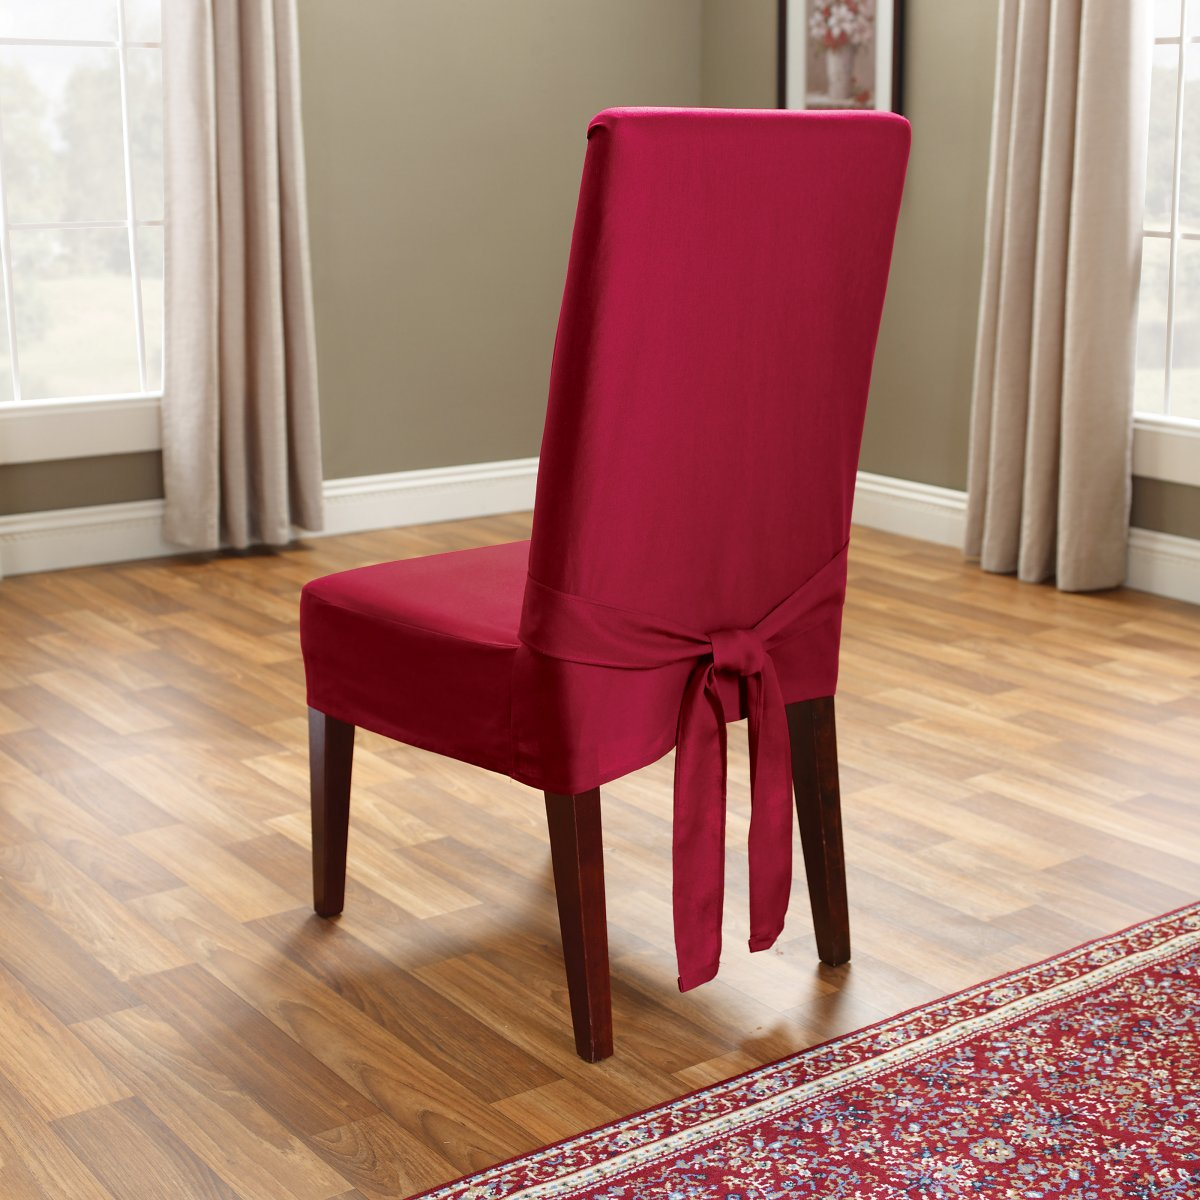 Dining chair seat cover - large and beautiful photos. Photo to ...